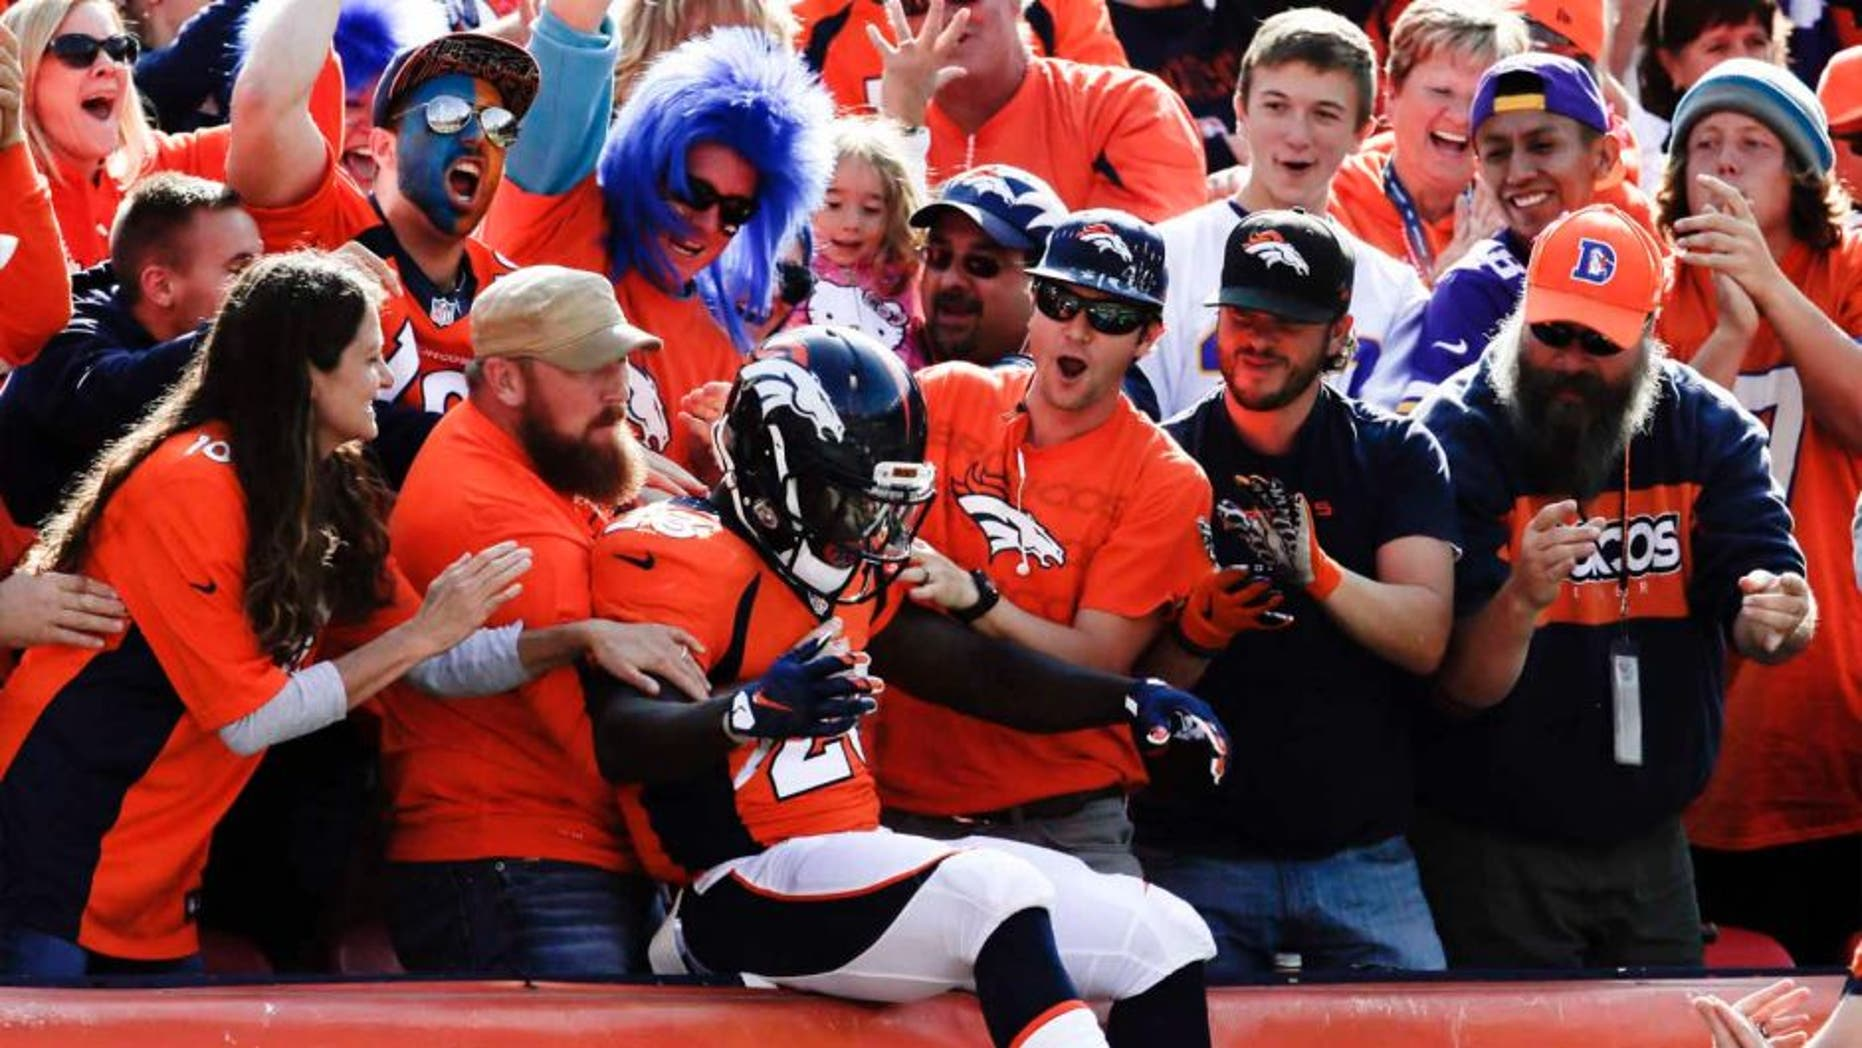 Denver Broncos running back Ronnie Hillman celebrates after scoring against the Minnesota Vikings during the first half Sunday, Oct. 4, 2015, in Denver.